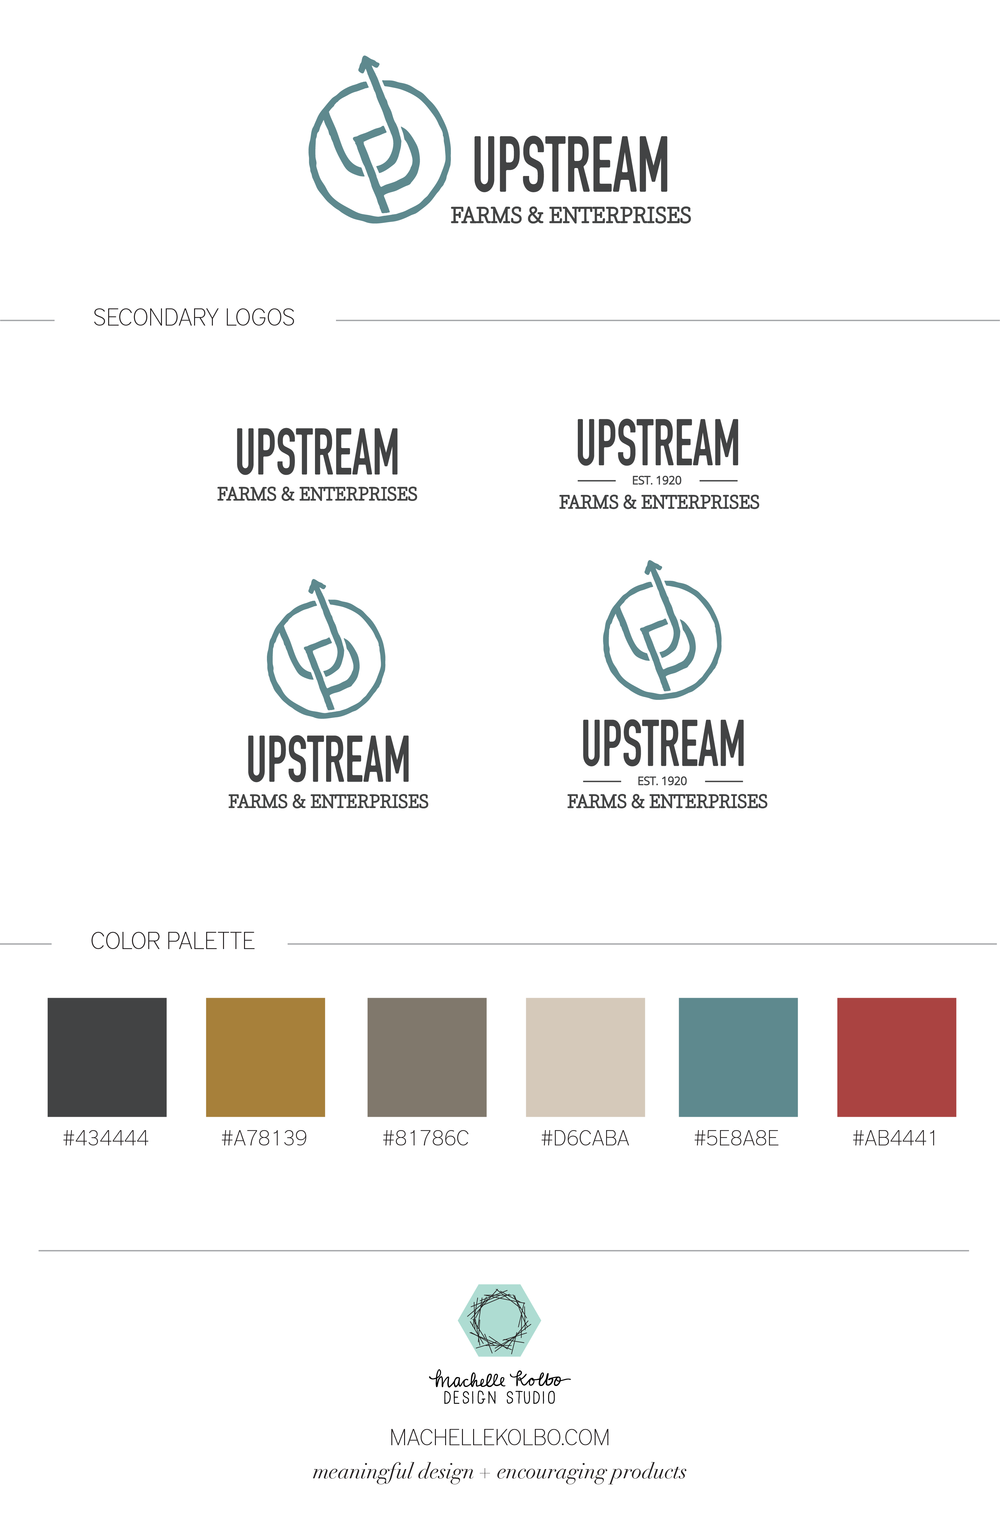 Upstream Farms Final Brand Identity